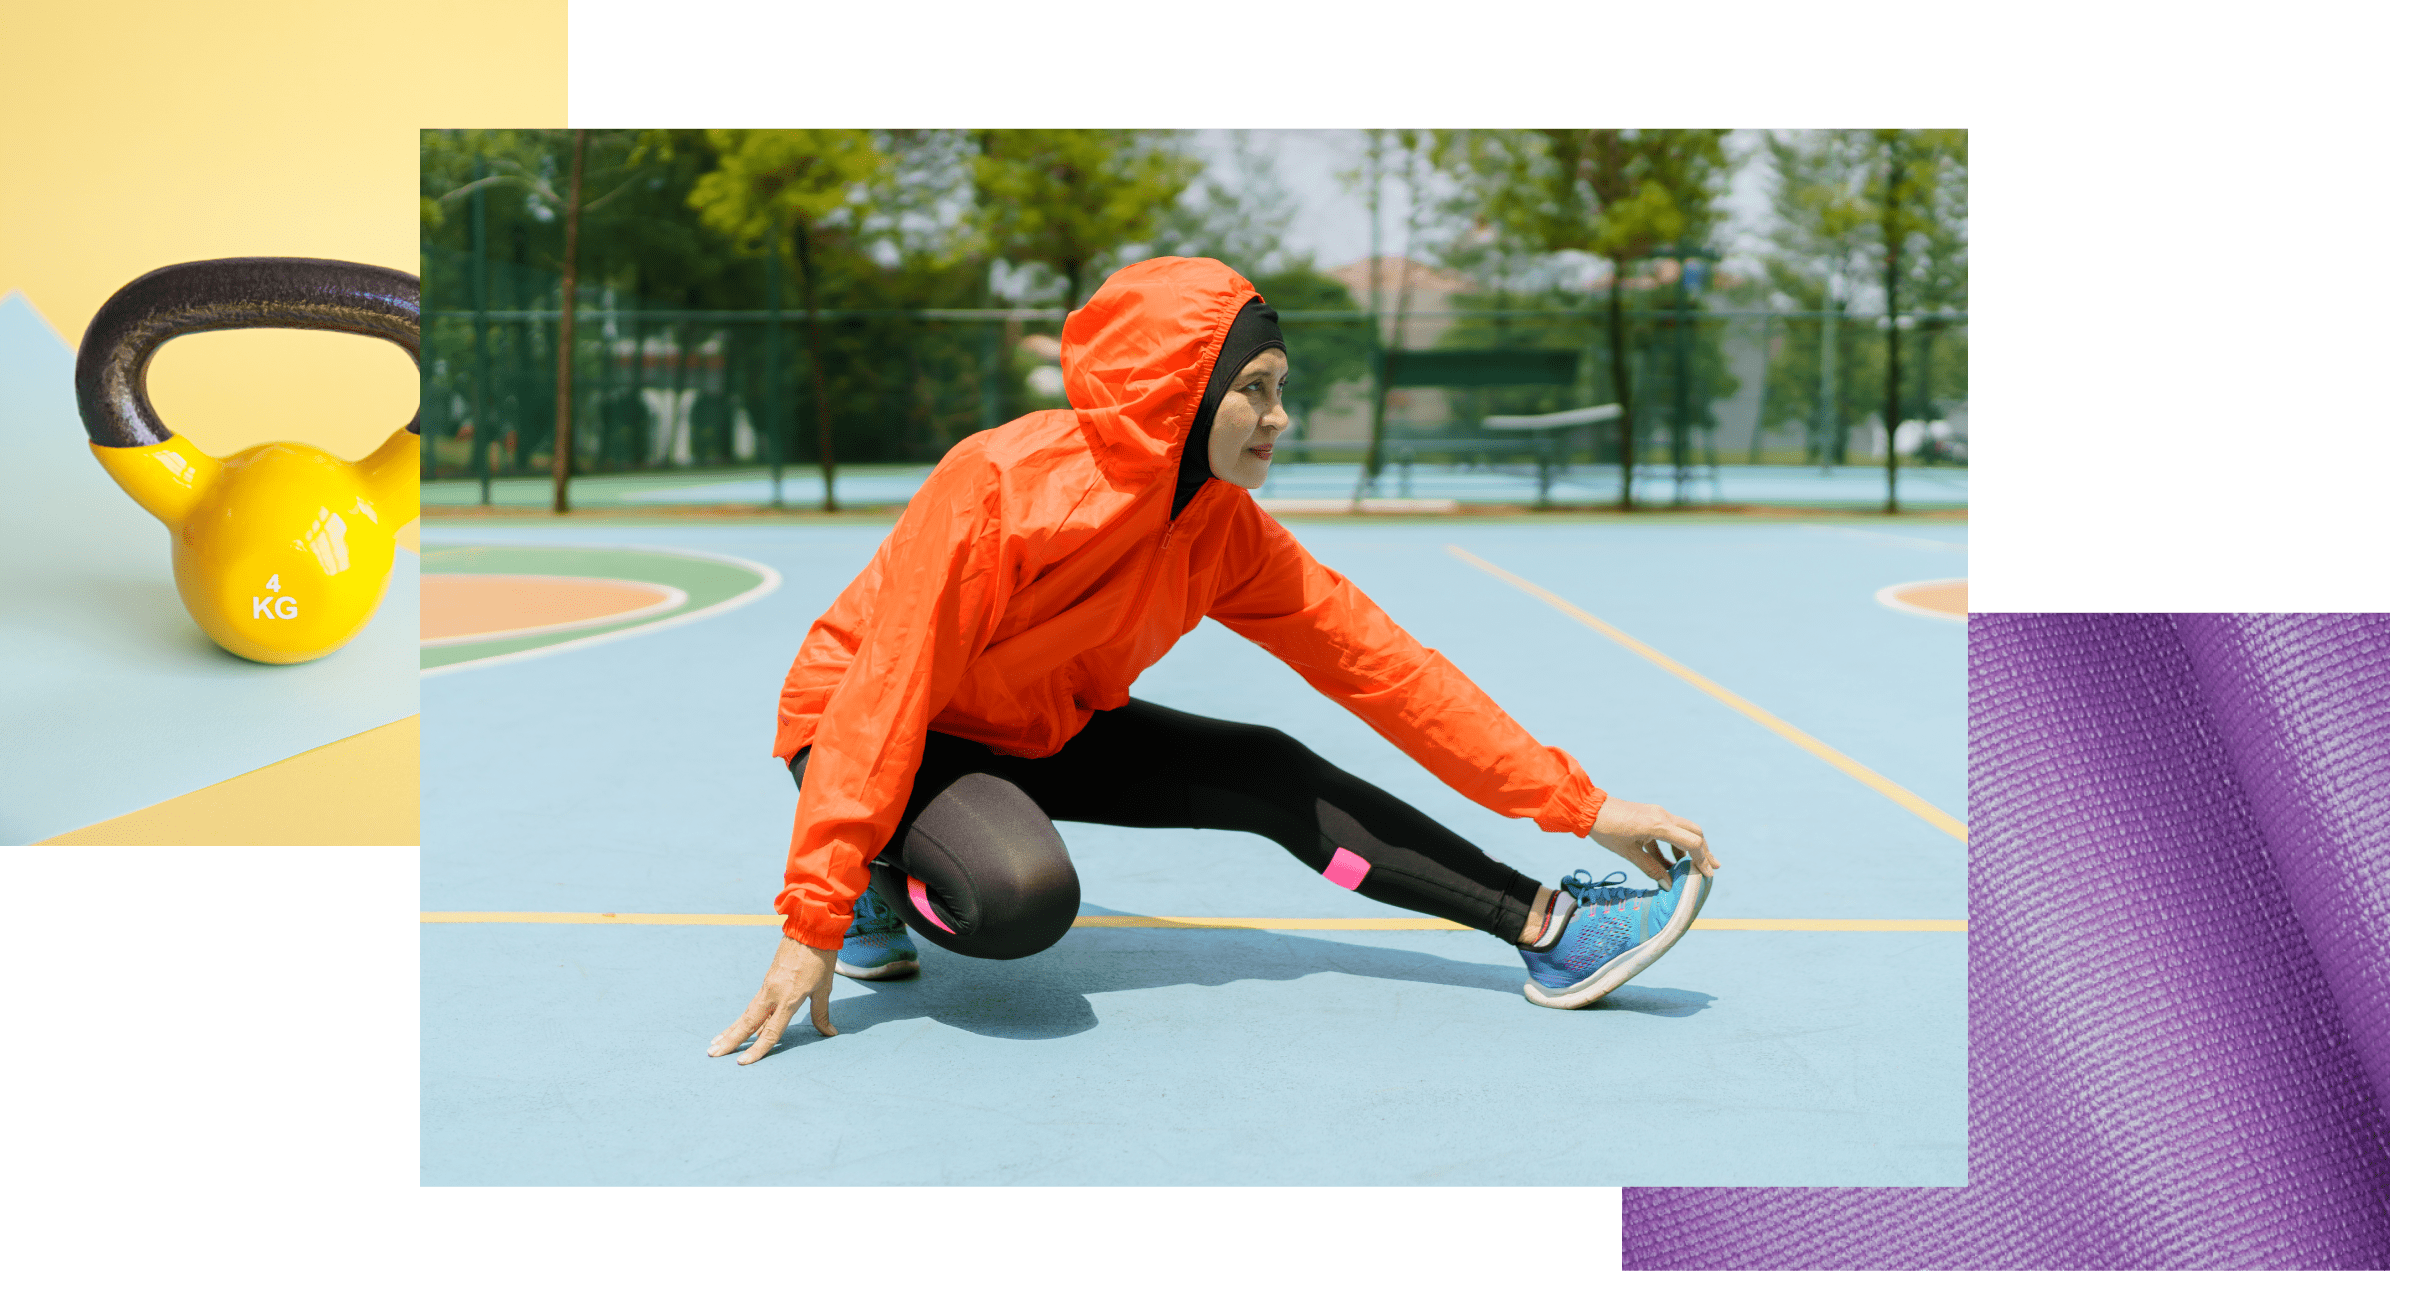 Three photos showing a bright yellow kettlebell with a cast-iron handle, a woman in an orange windbreaker stretching and a closeup on a purple yoga mat